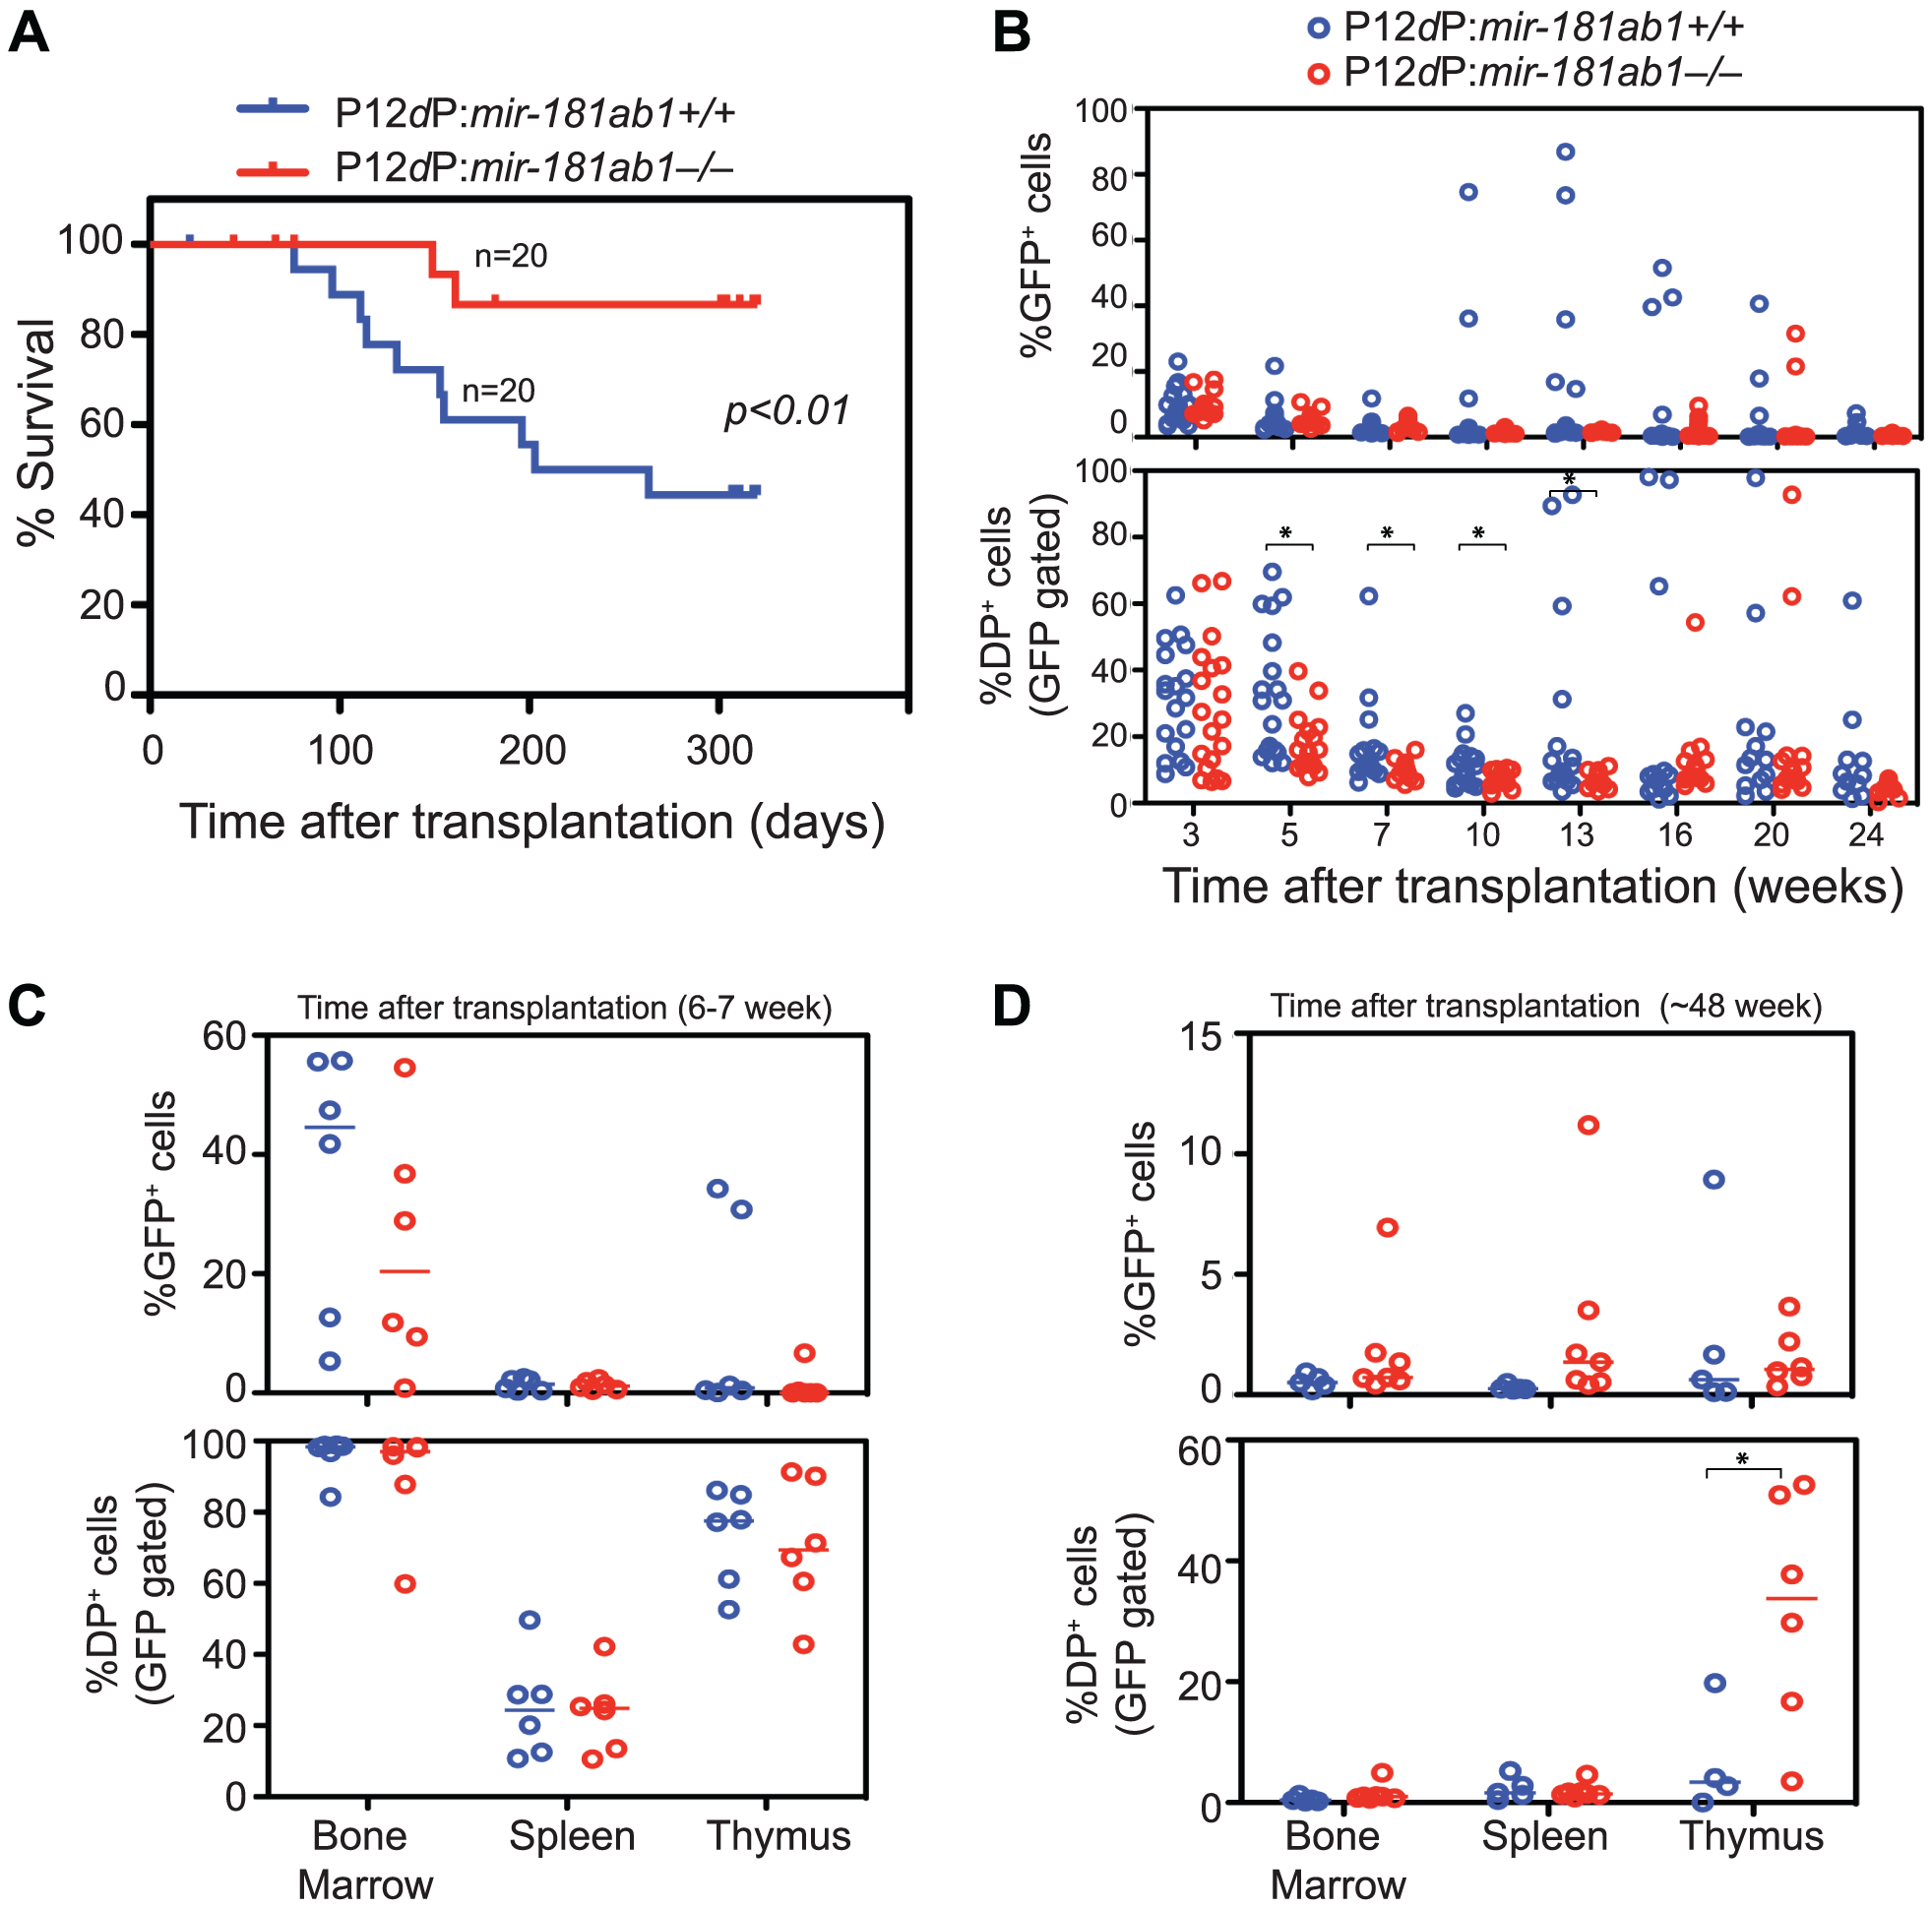 Loss of <i>mir-181ab1</i> inhibits leukemia development induced by the human NOTCH1 mutant P12ΔP.